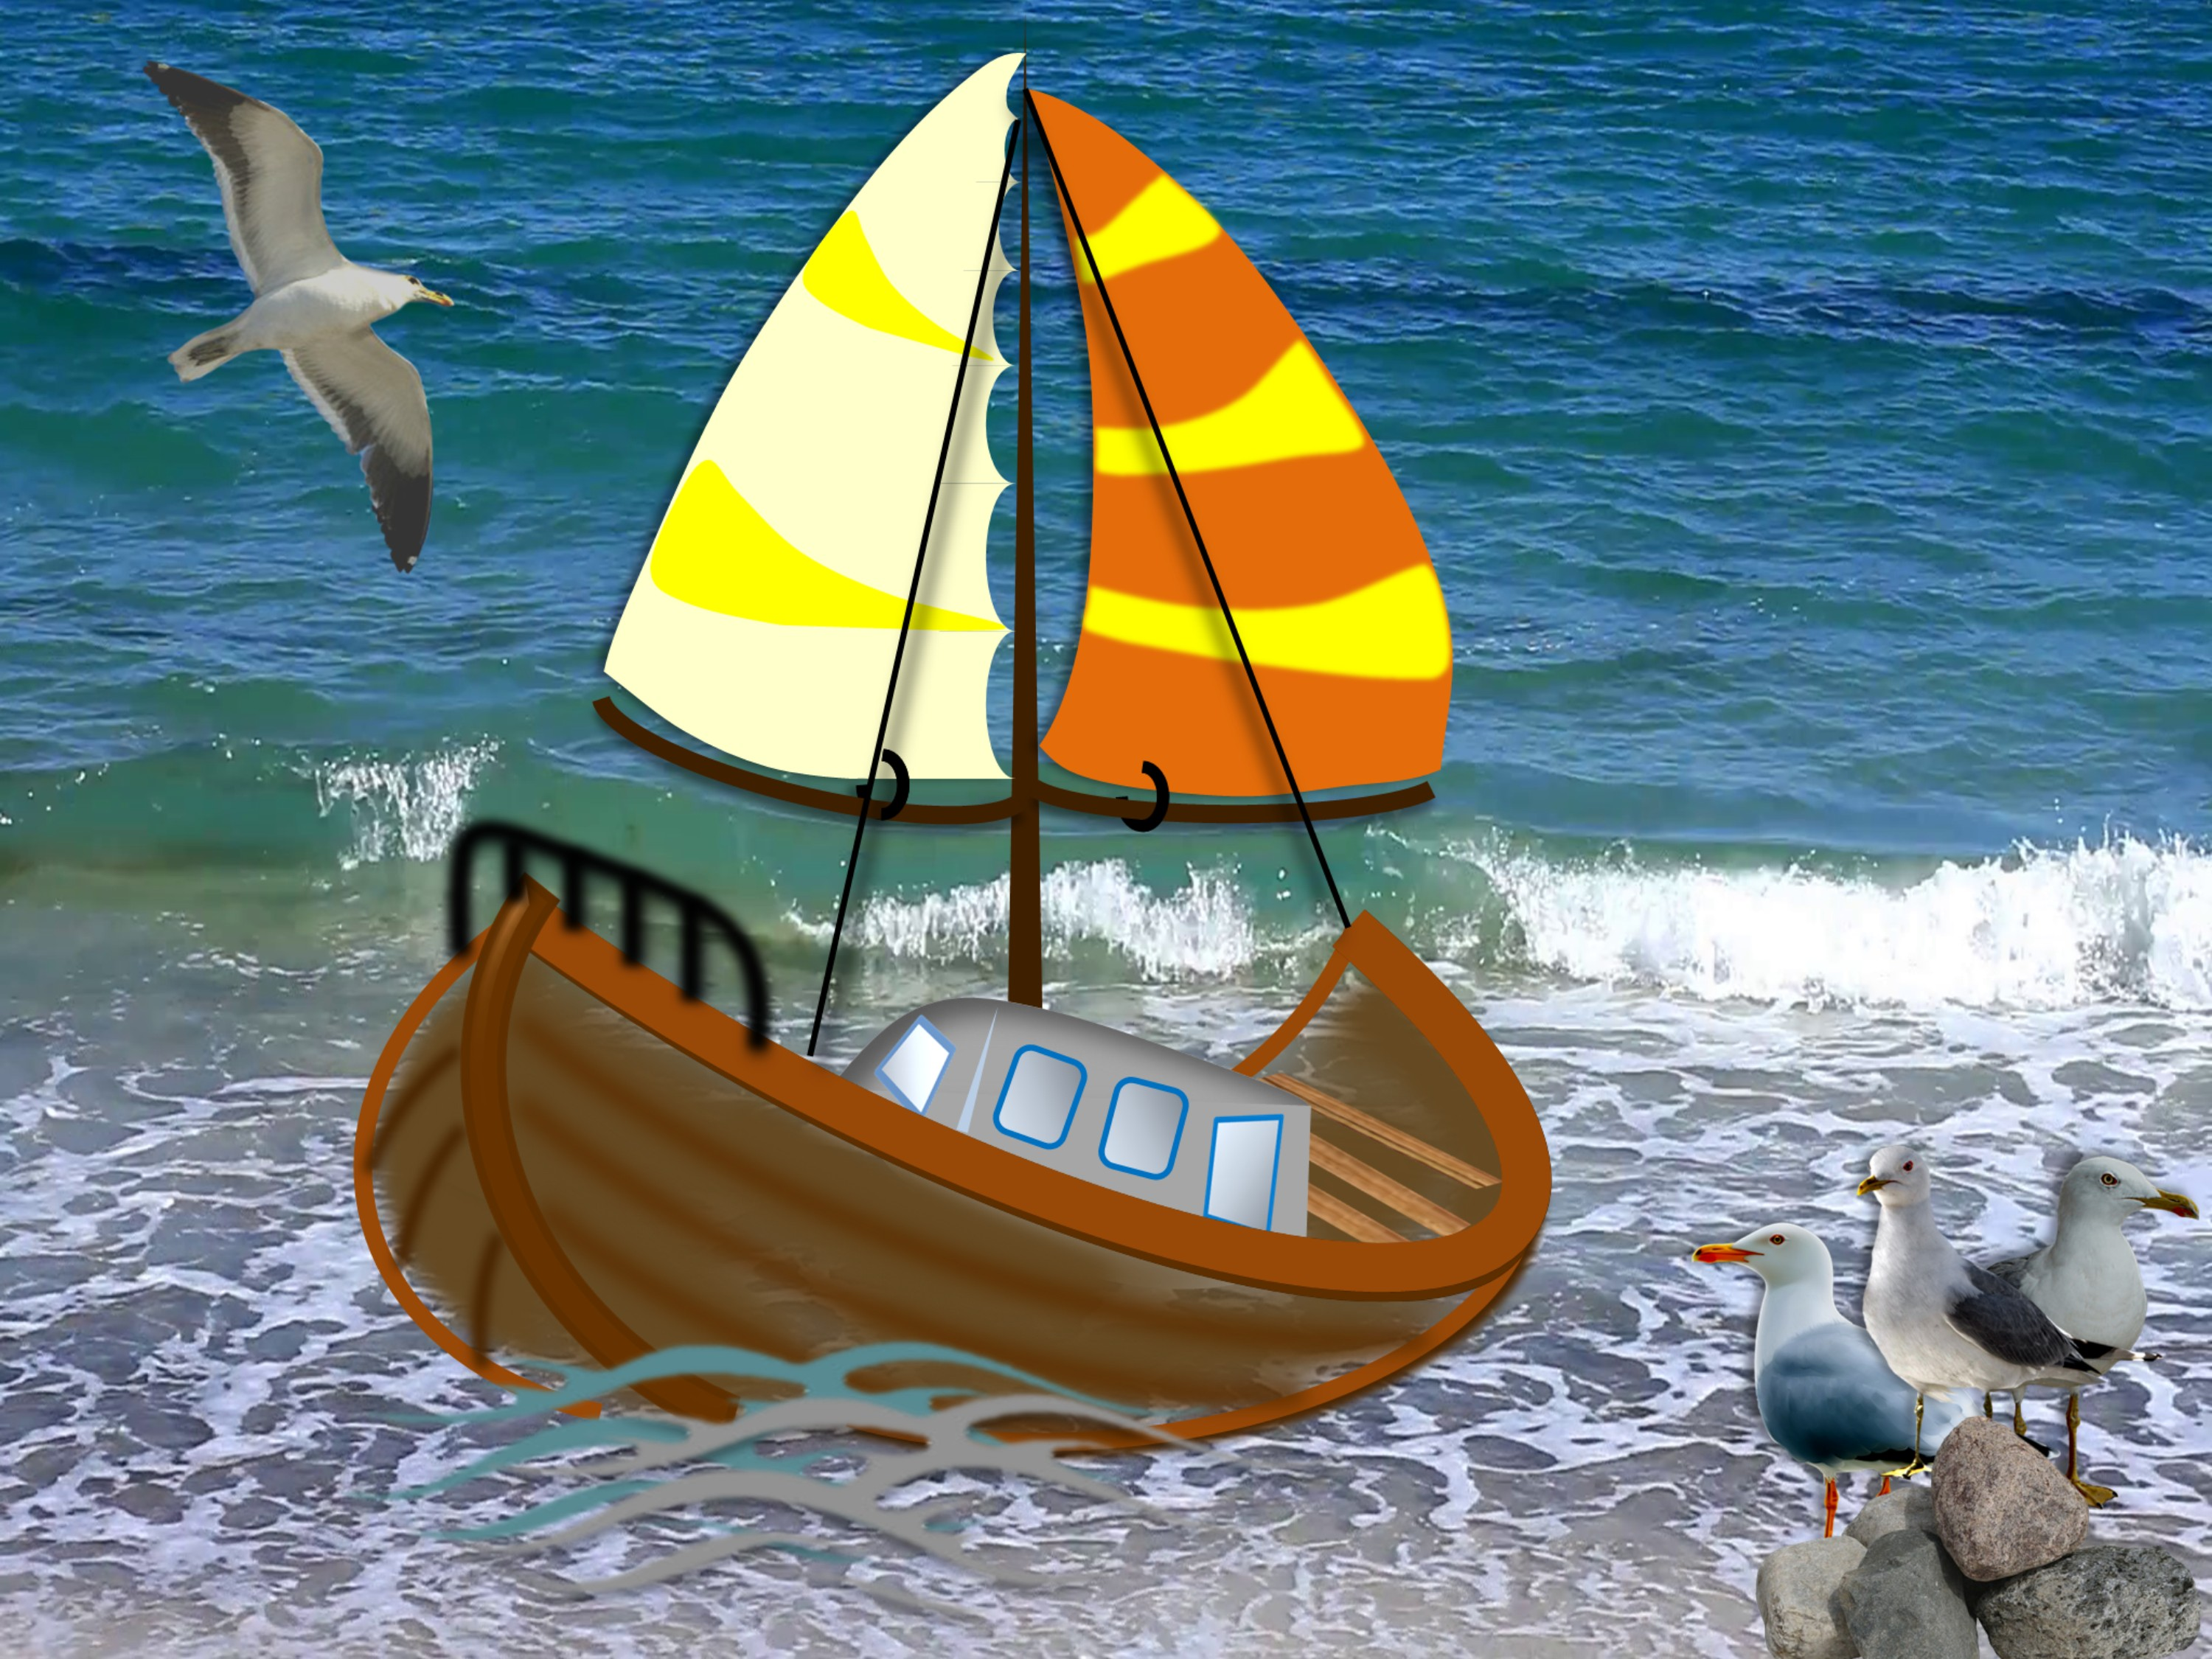 Create A Sailboat Using PowerPoint | Sailboat Design | Drawings and Design Ideas |